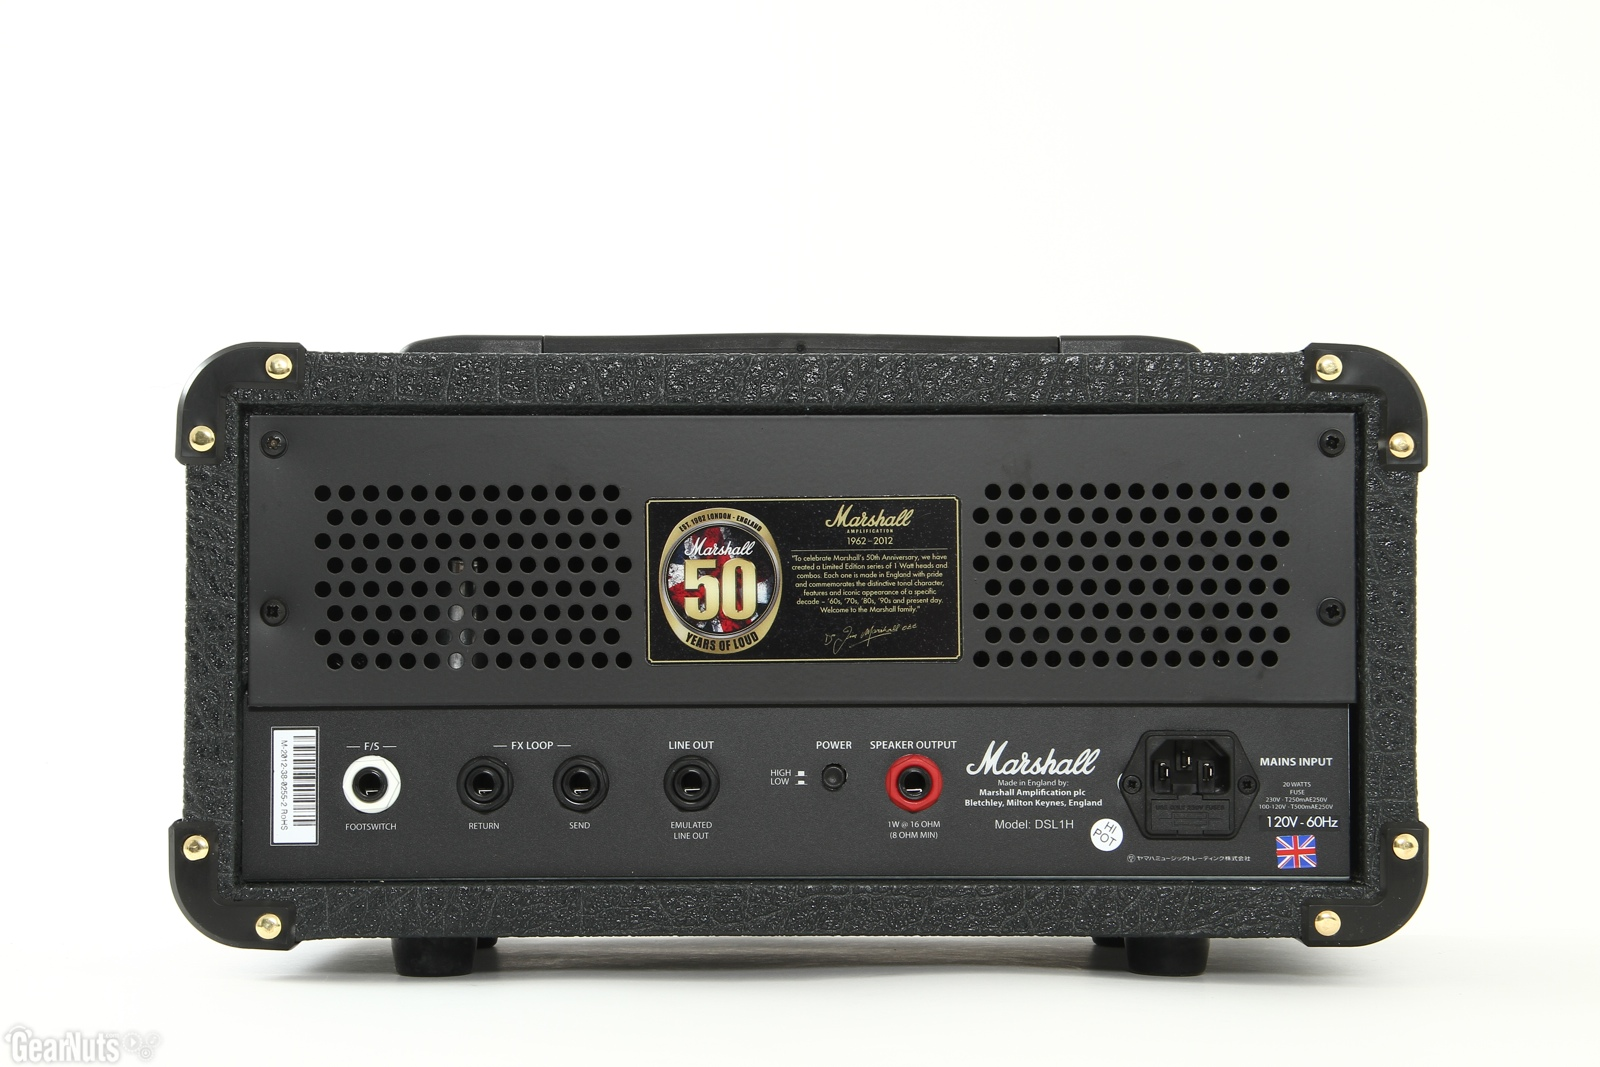 Power Audio  lifier With Tda7377 2 1 Stereo Subwoofer furthermore A play m 536367 in addition OTL Negative Gate Voltage Doubler Rectifier Circuit For Tube together with Progetti likewise A play m 1822410. on computer tube amp